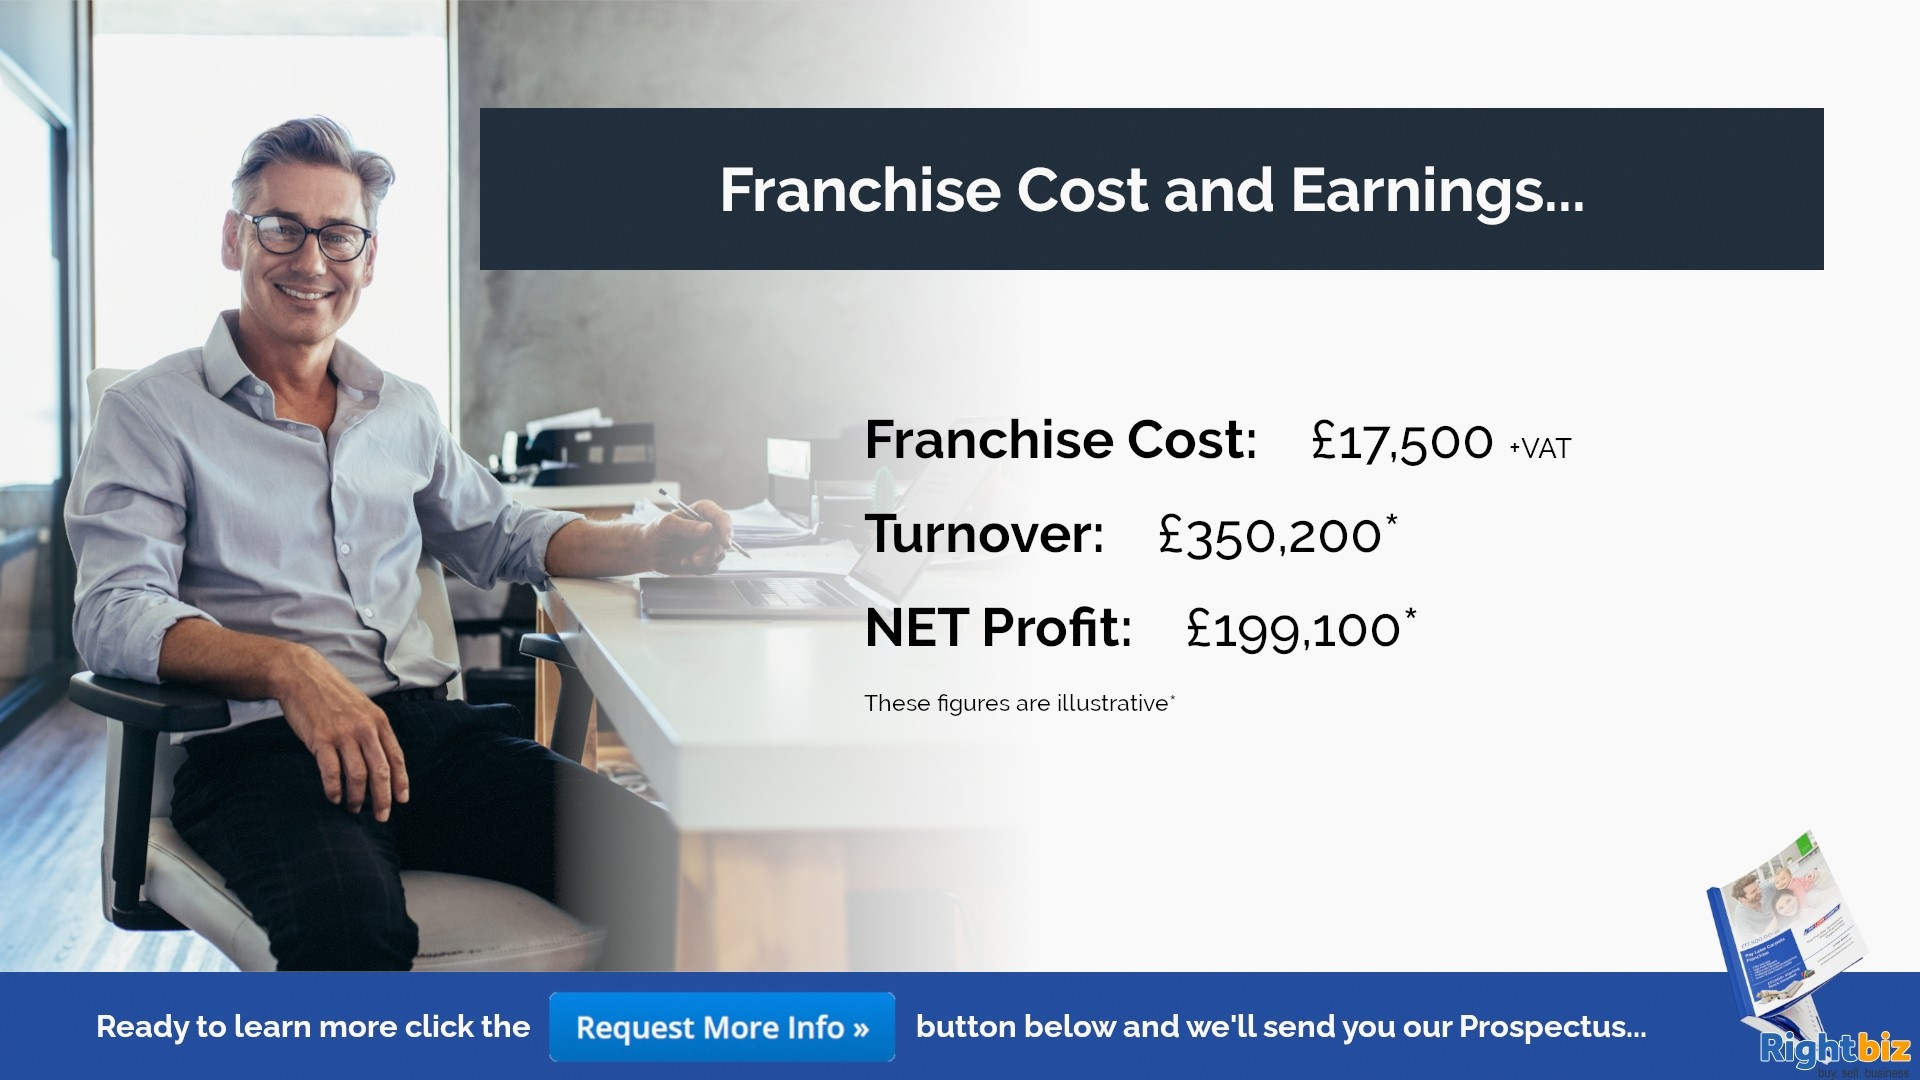 Pay Later Carpets Franchise Glasgow Our First Franchisee Made £11,000+ Profit in Month One - Image 5